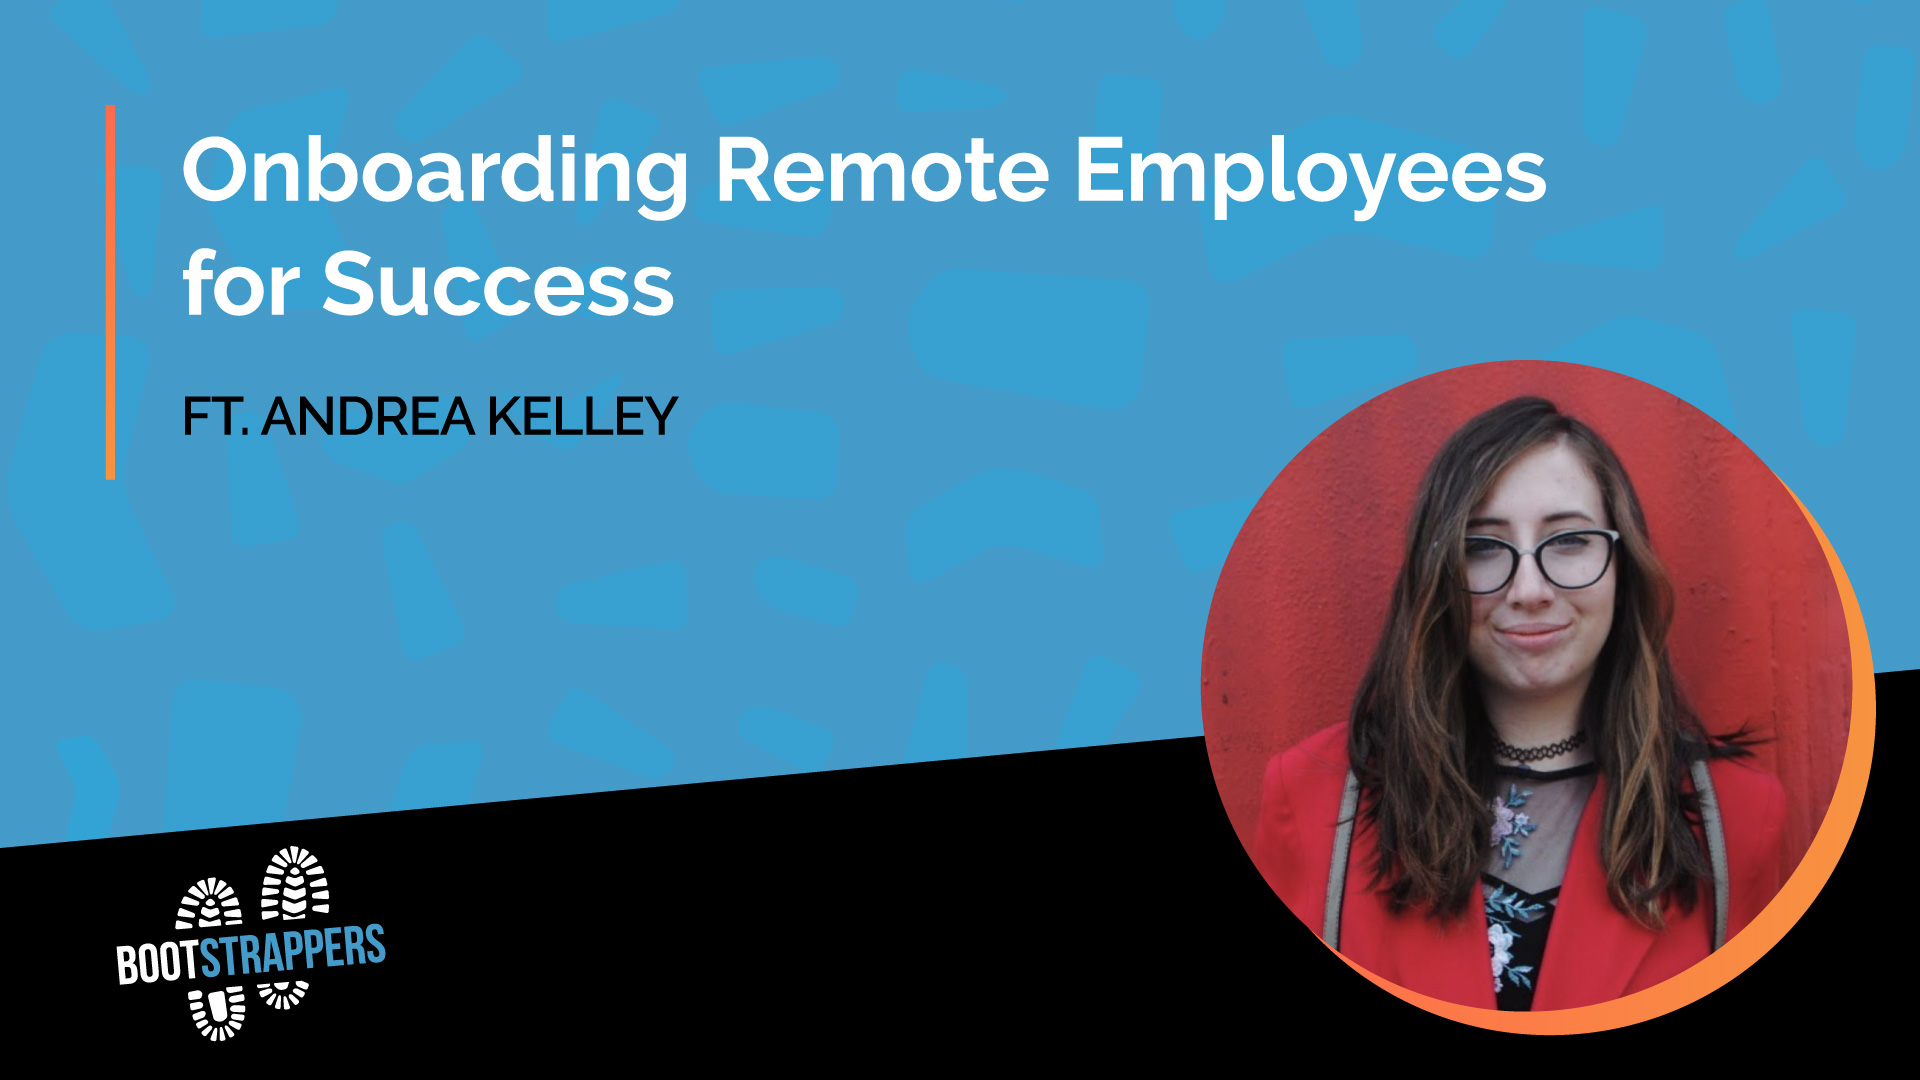 anequim-bootstrappers-onboarding-remote-employees-for-success